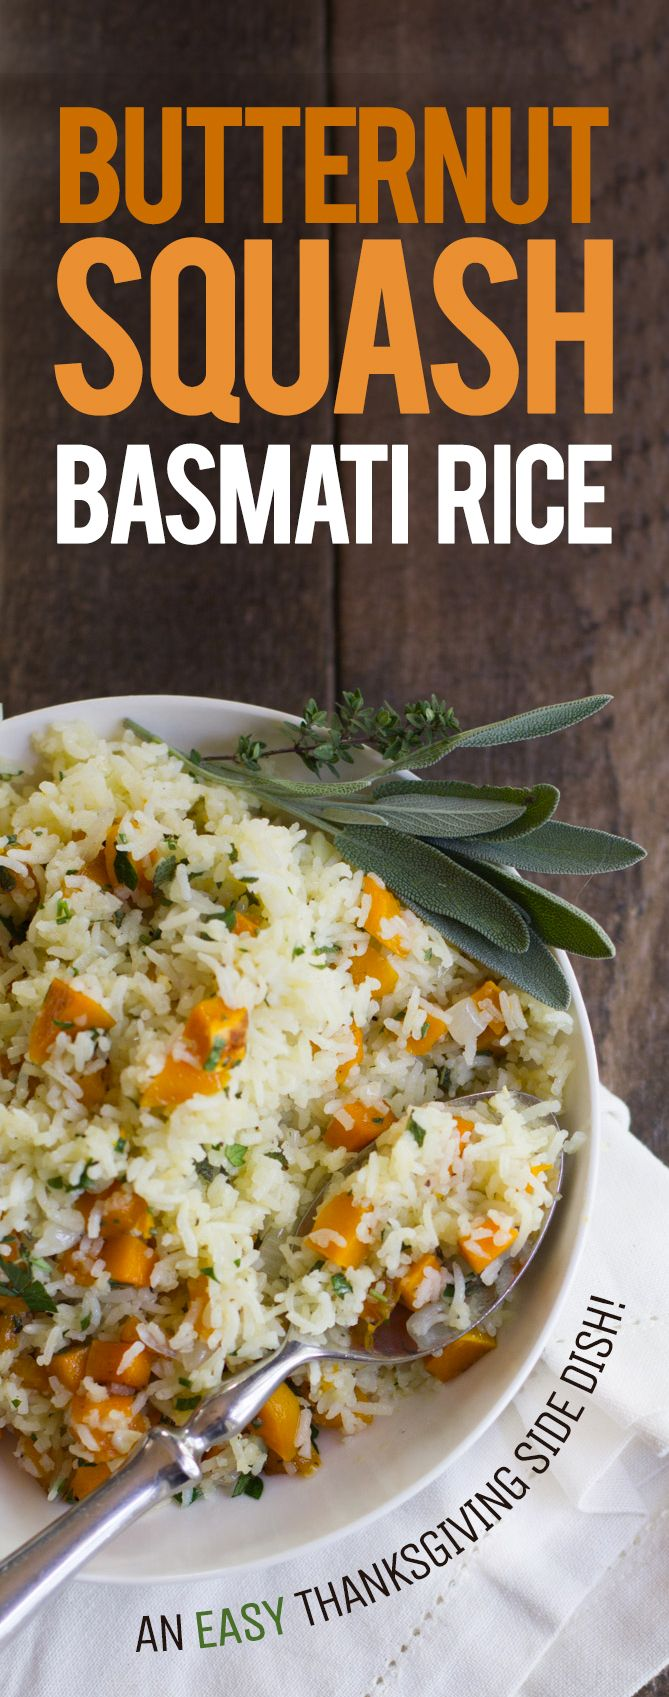 Butternut Squash Basmati Rice. This quick and easy rice dish is full of Fall flavor! Serve up Butternut Squash Basmati Rice for a weeknight dinner or at the holiday table.